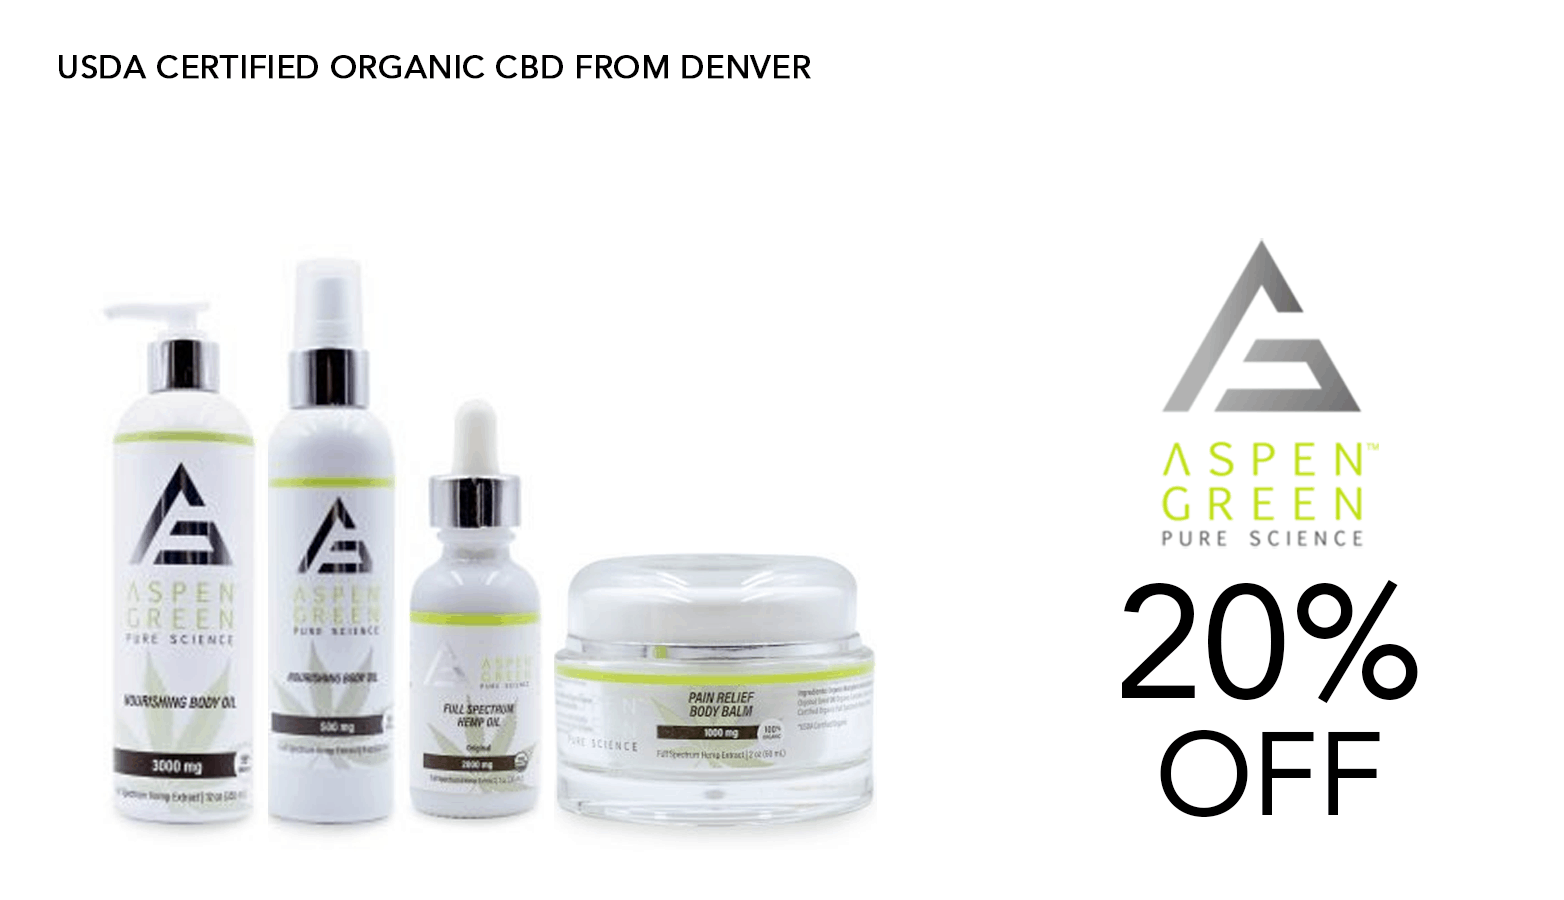 Aspen Green CBD Coupon Code 20 Percent Off